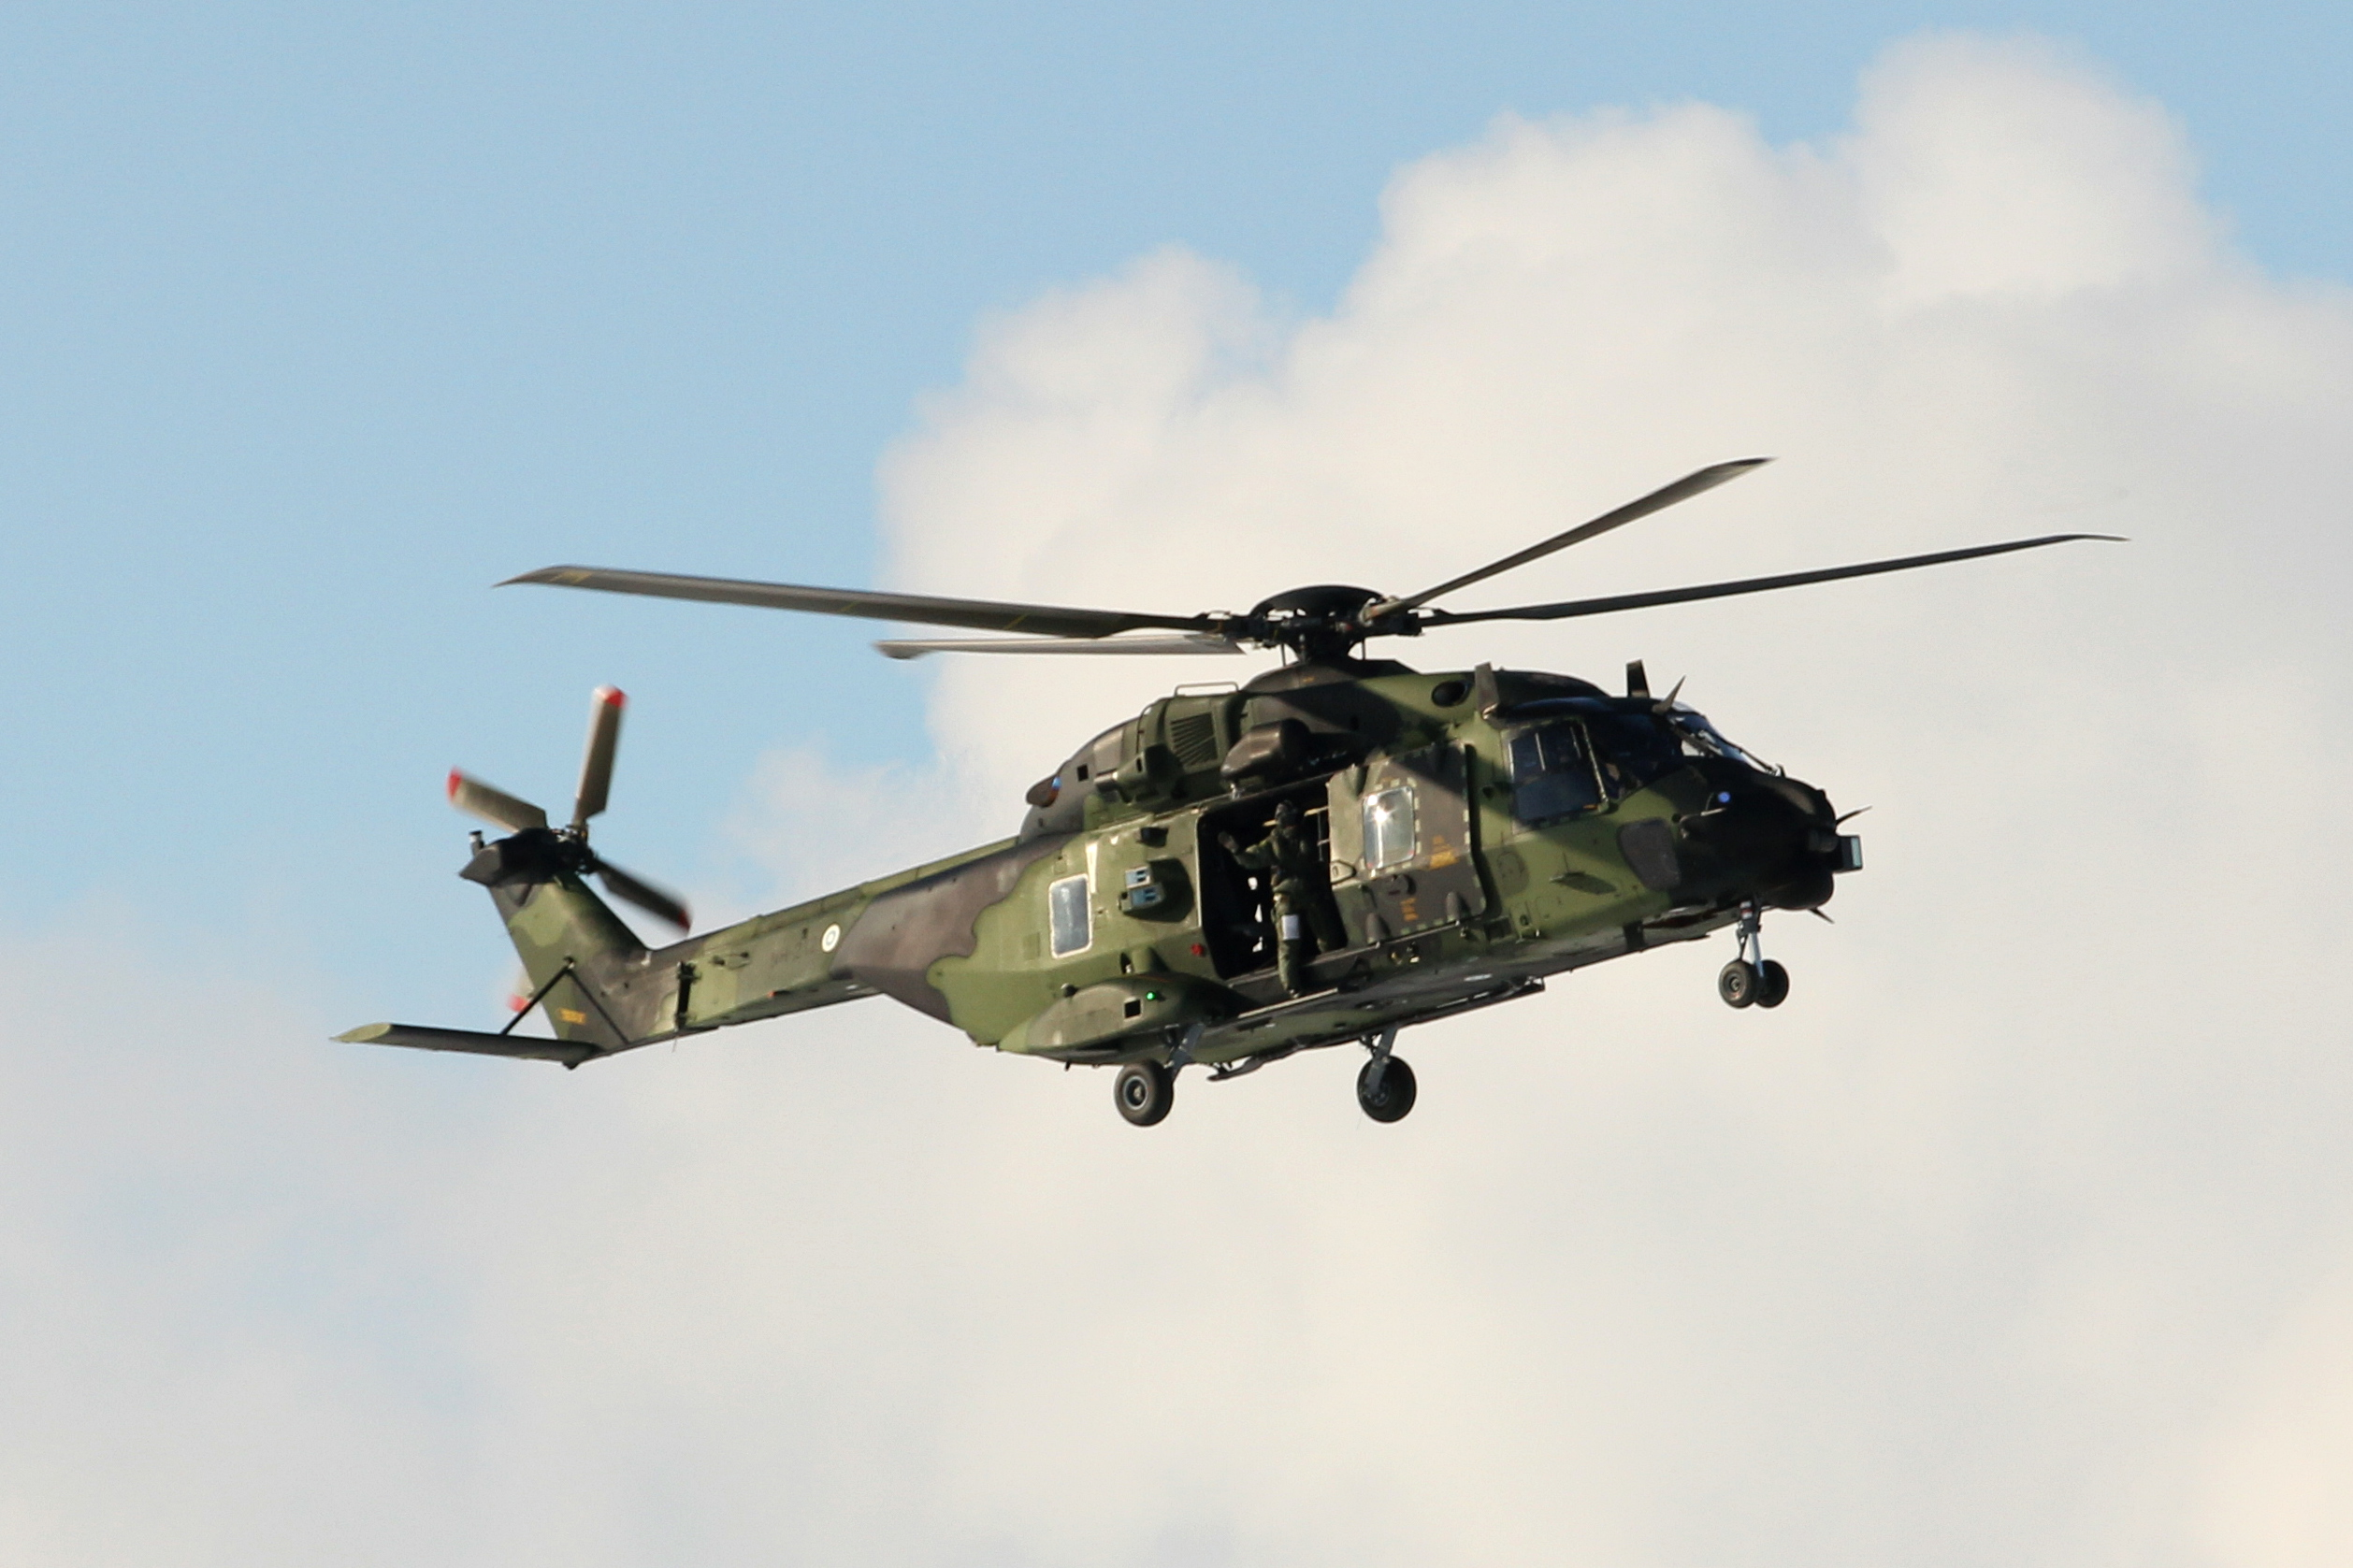 NH 90 on show